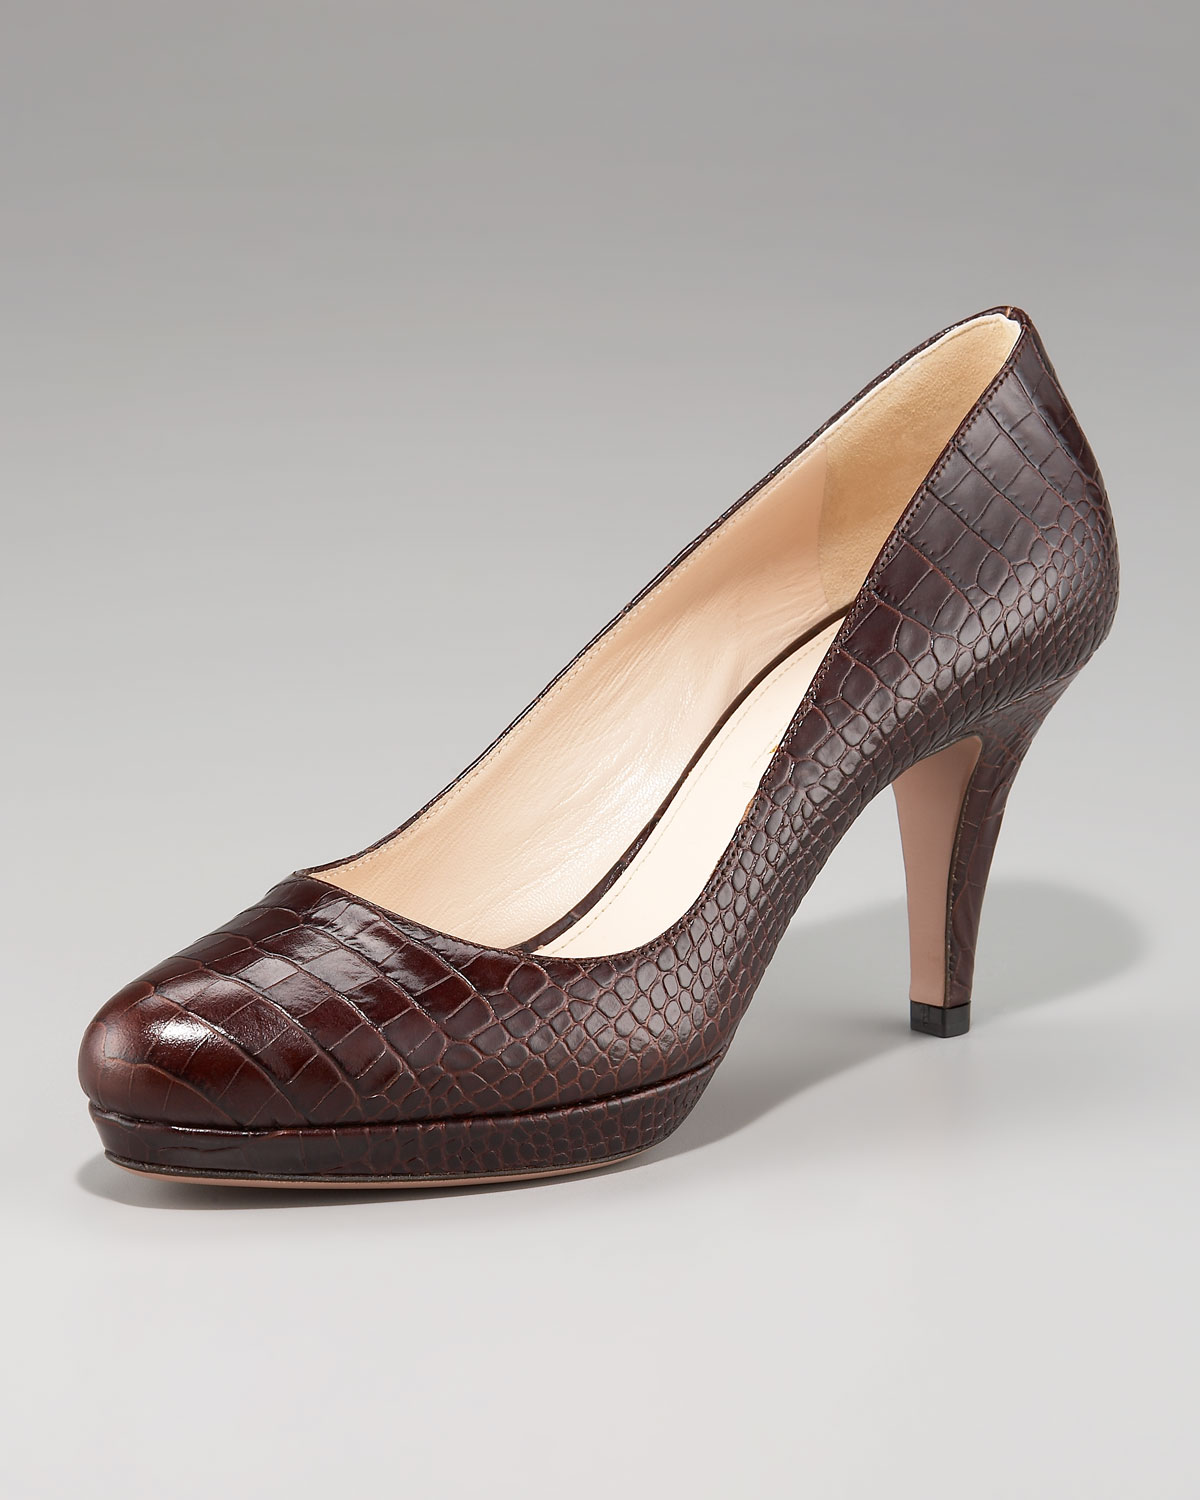 outlet shop offer cheap for cheap Prada Alligator Platform Pumps perfect discount very cheap YpJAE